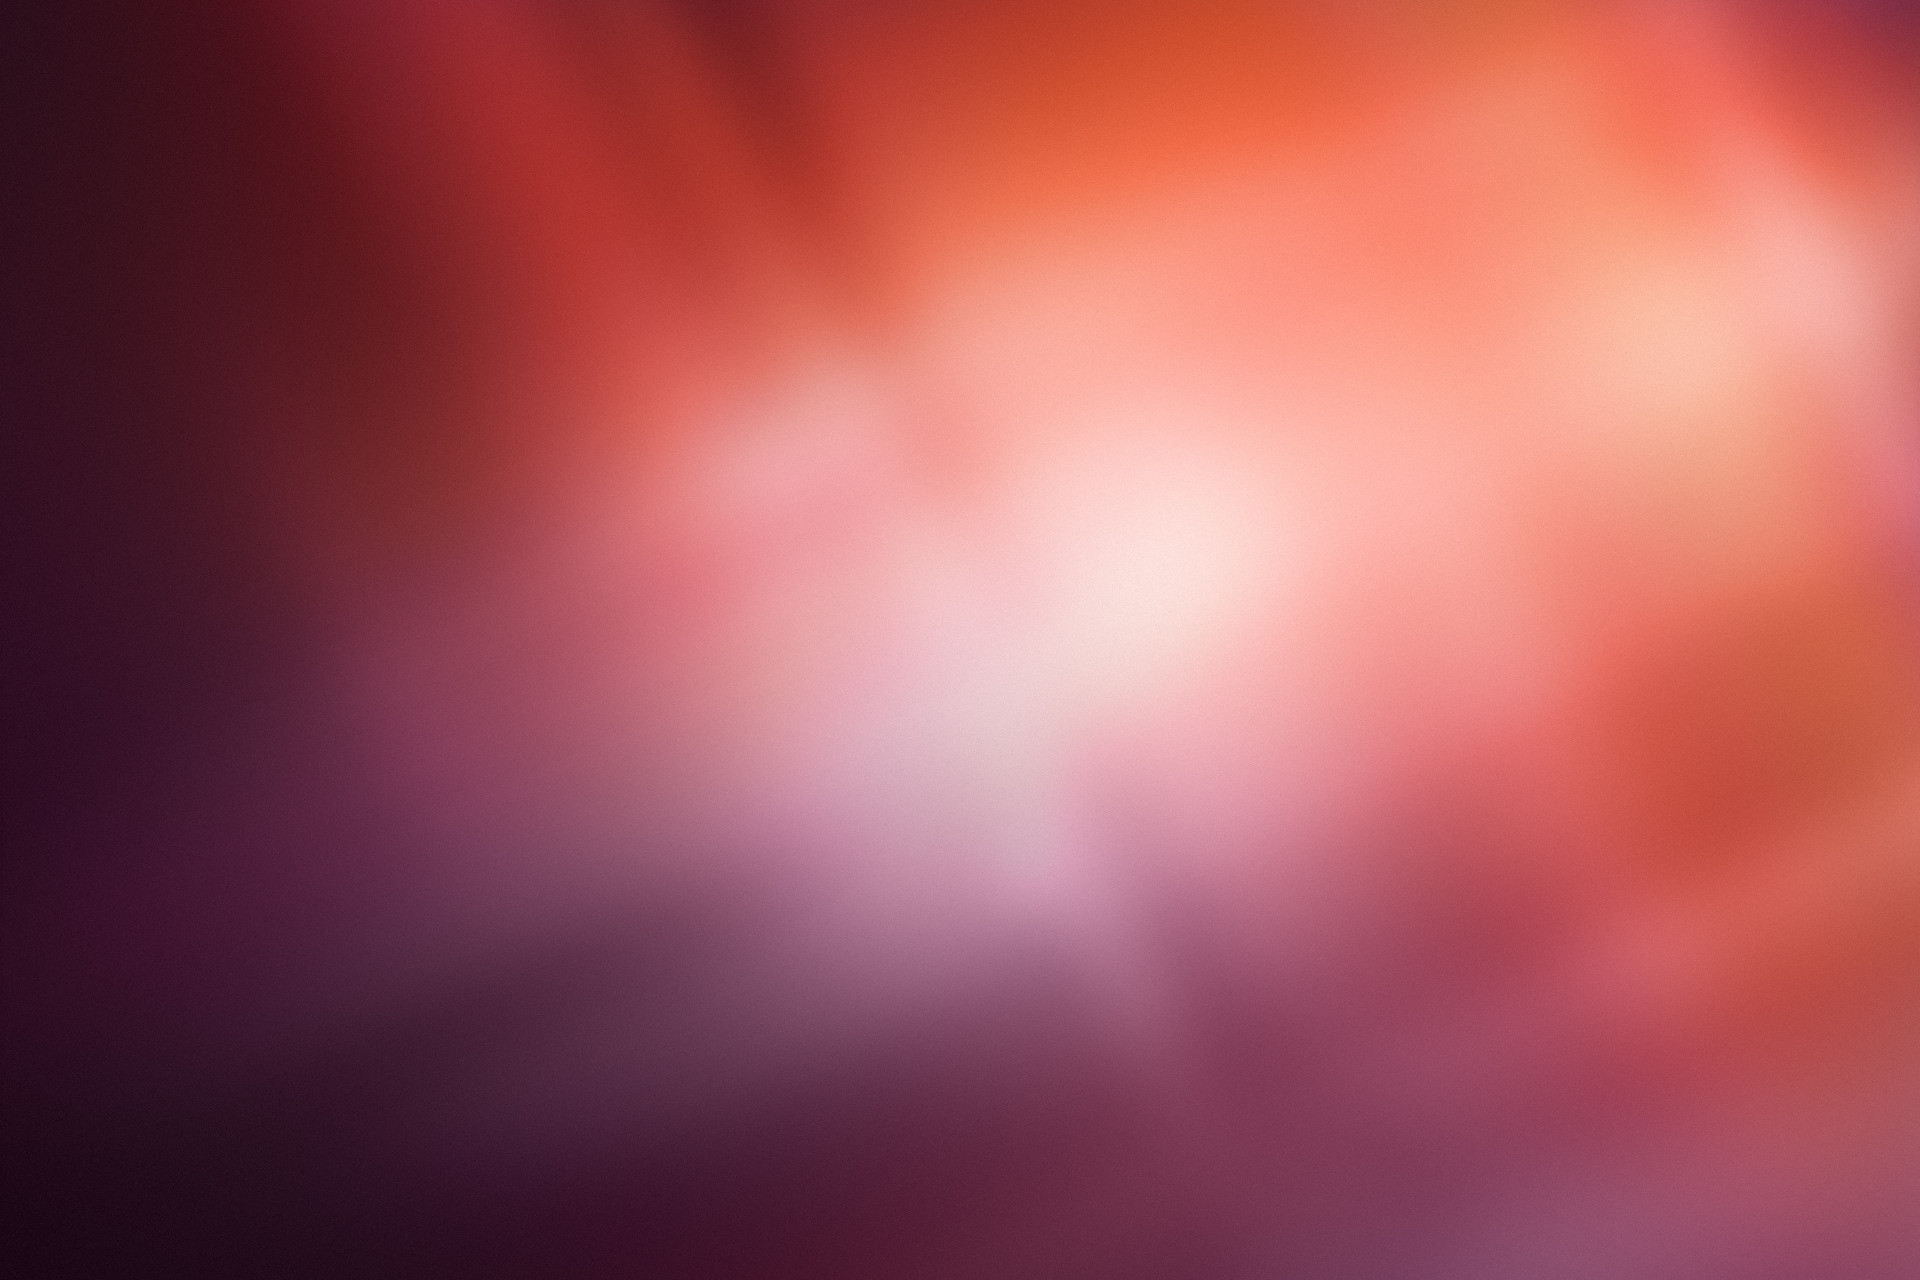 Ubuntu 12.04 Default Wallpaper